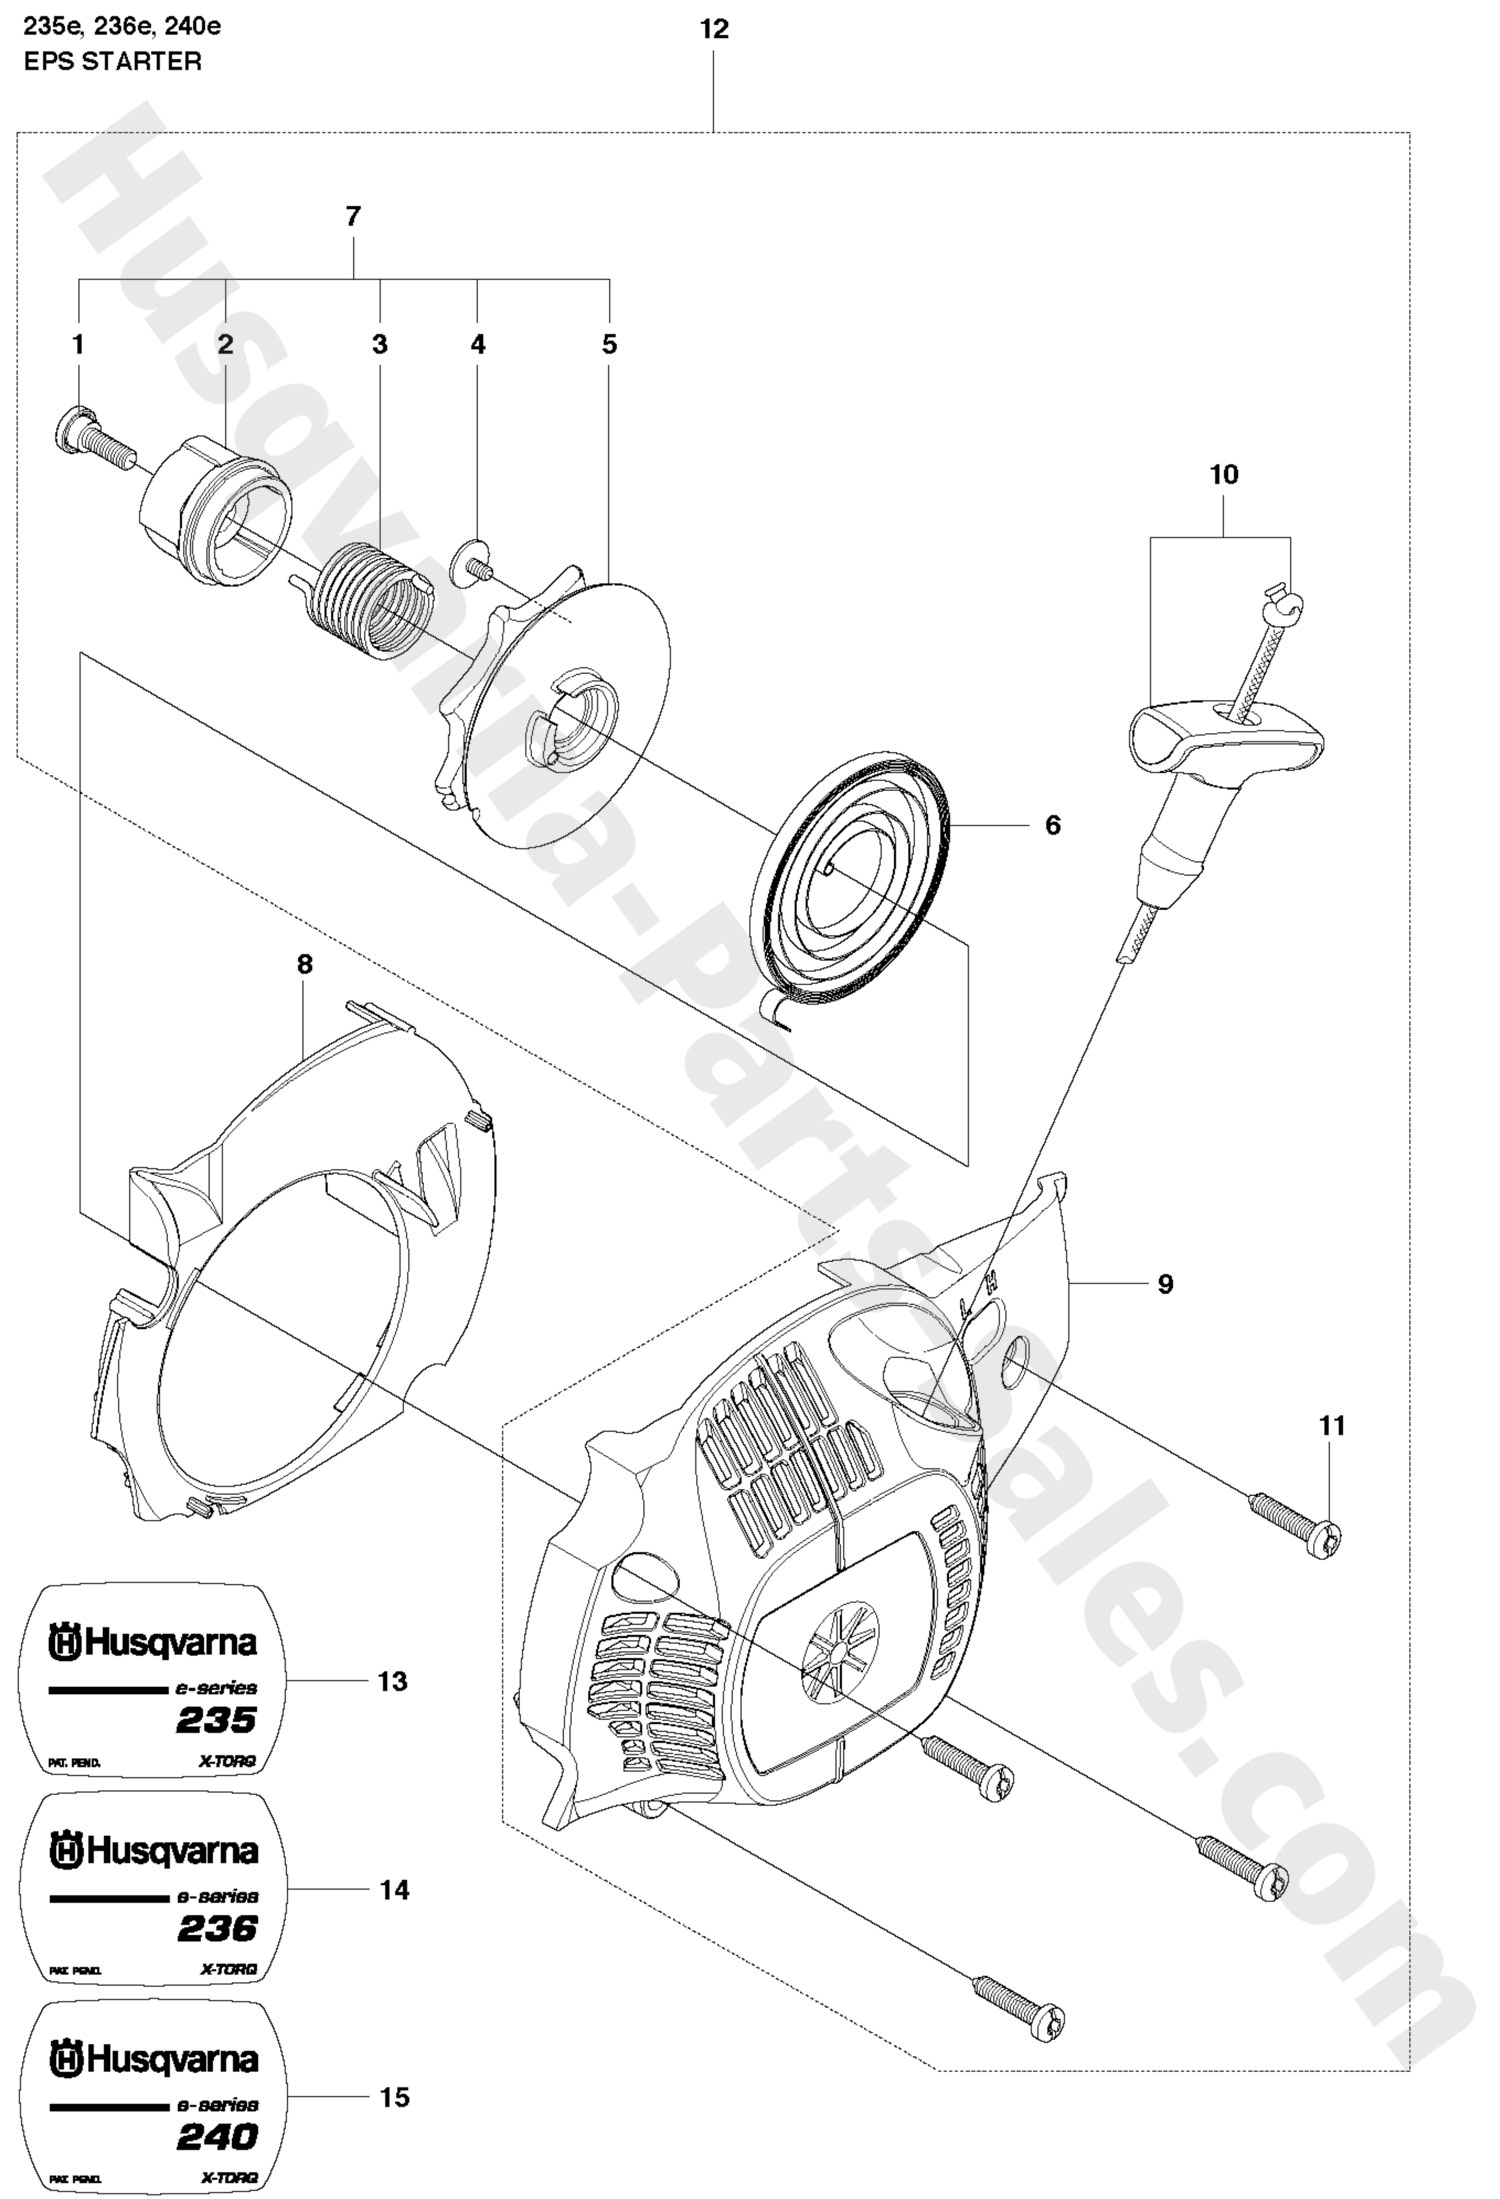 Husqvarna 235 Chainsaw Parts Diagram